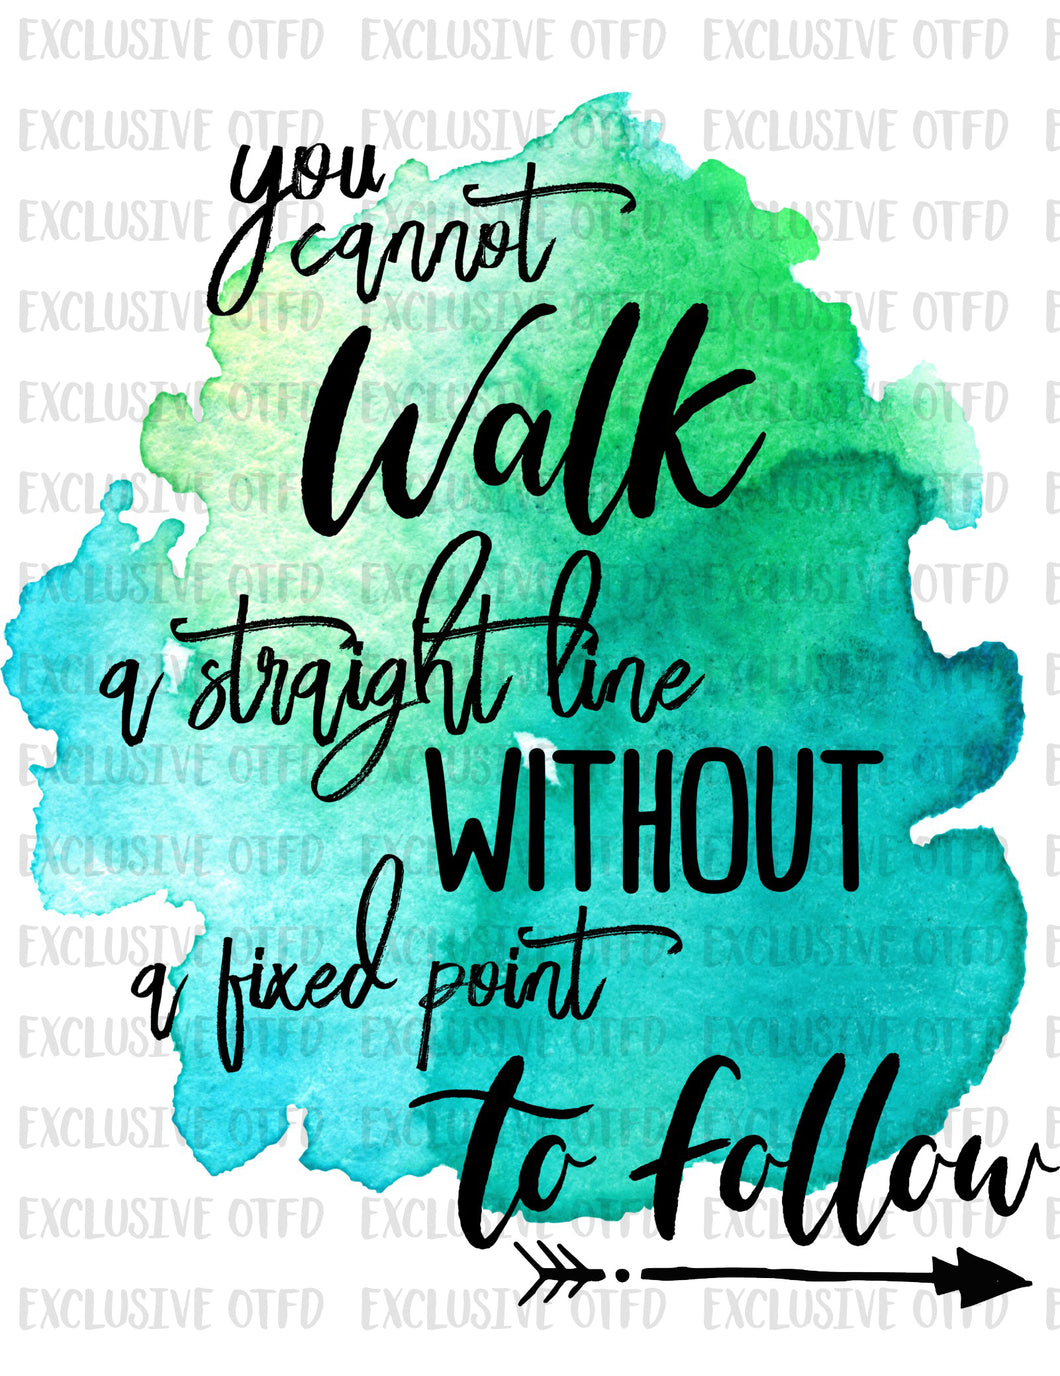 you cannot walk a straight line